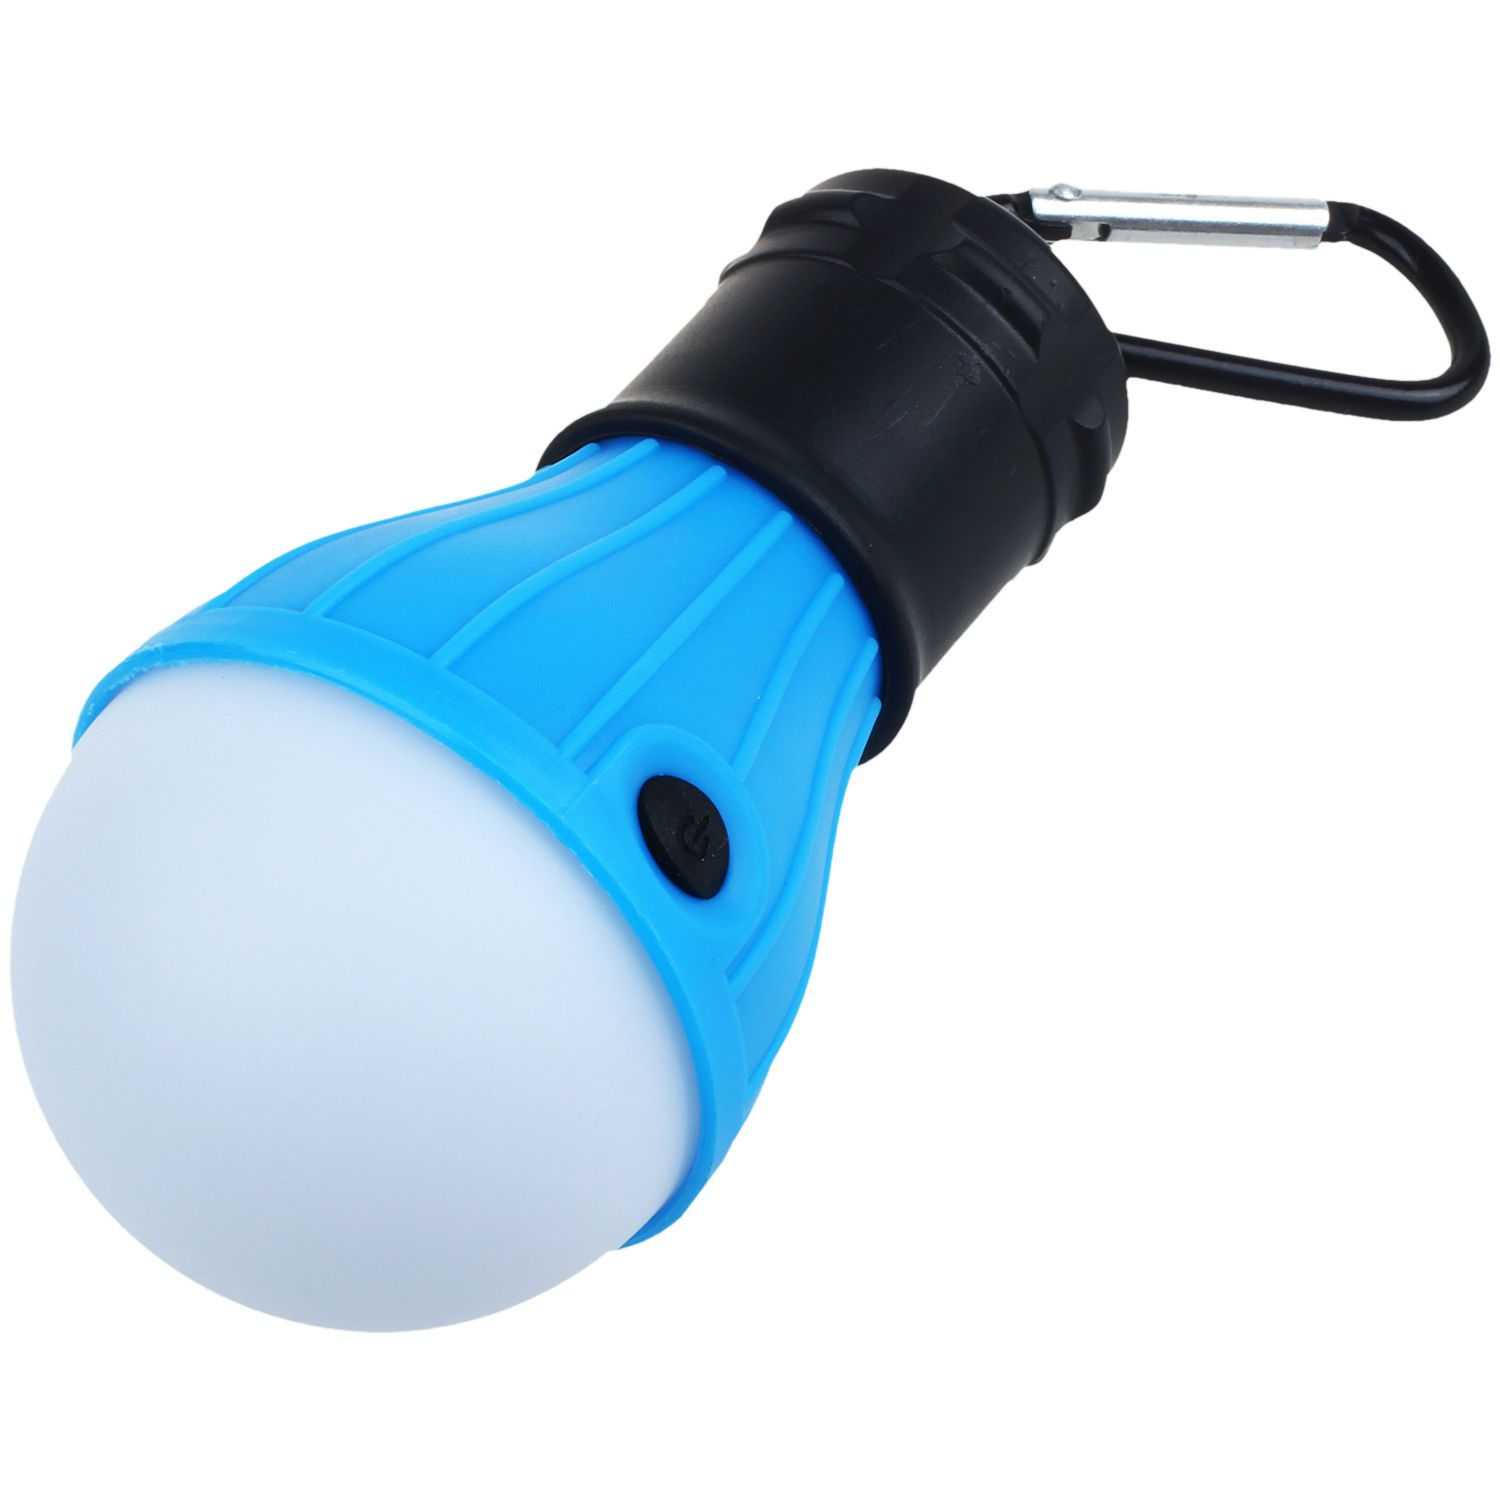 Portable LED Lanterns Camping Mountaineering Bulbs Camping Hiking Fishing Emergency Lights Battery-powered Camping Gear Gear G